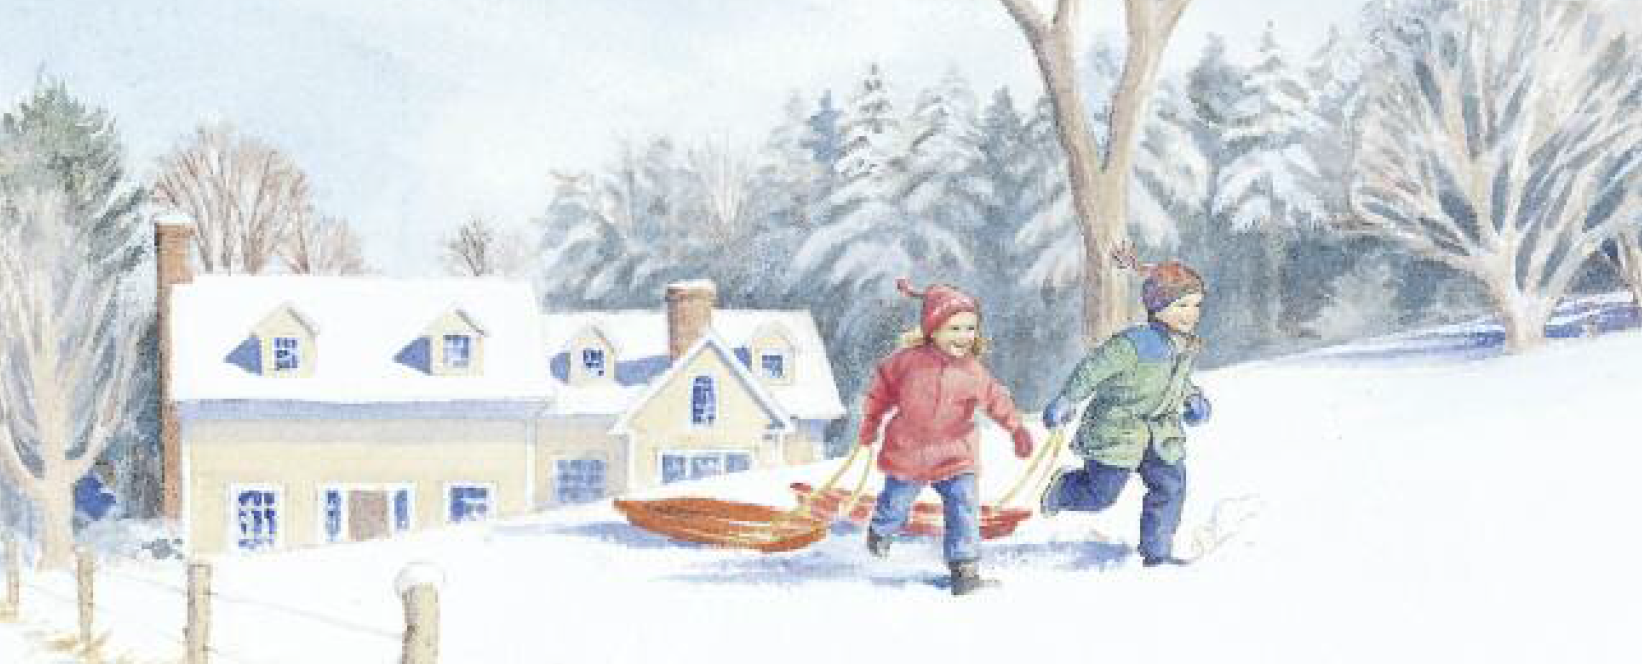 Meg and Jim's Sled Trip Illustration